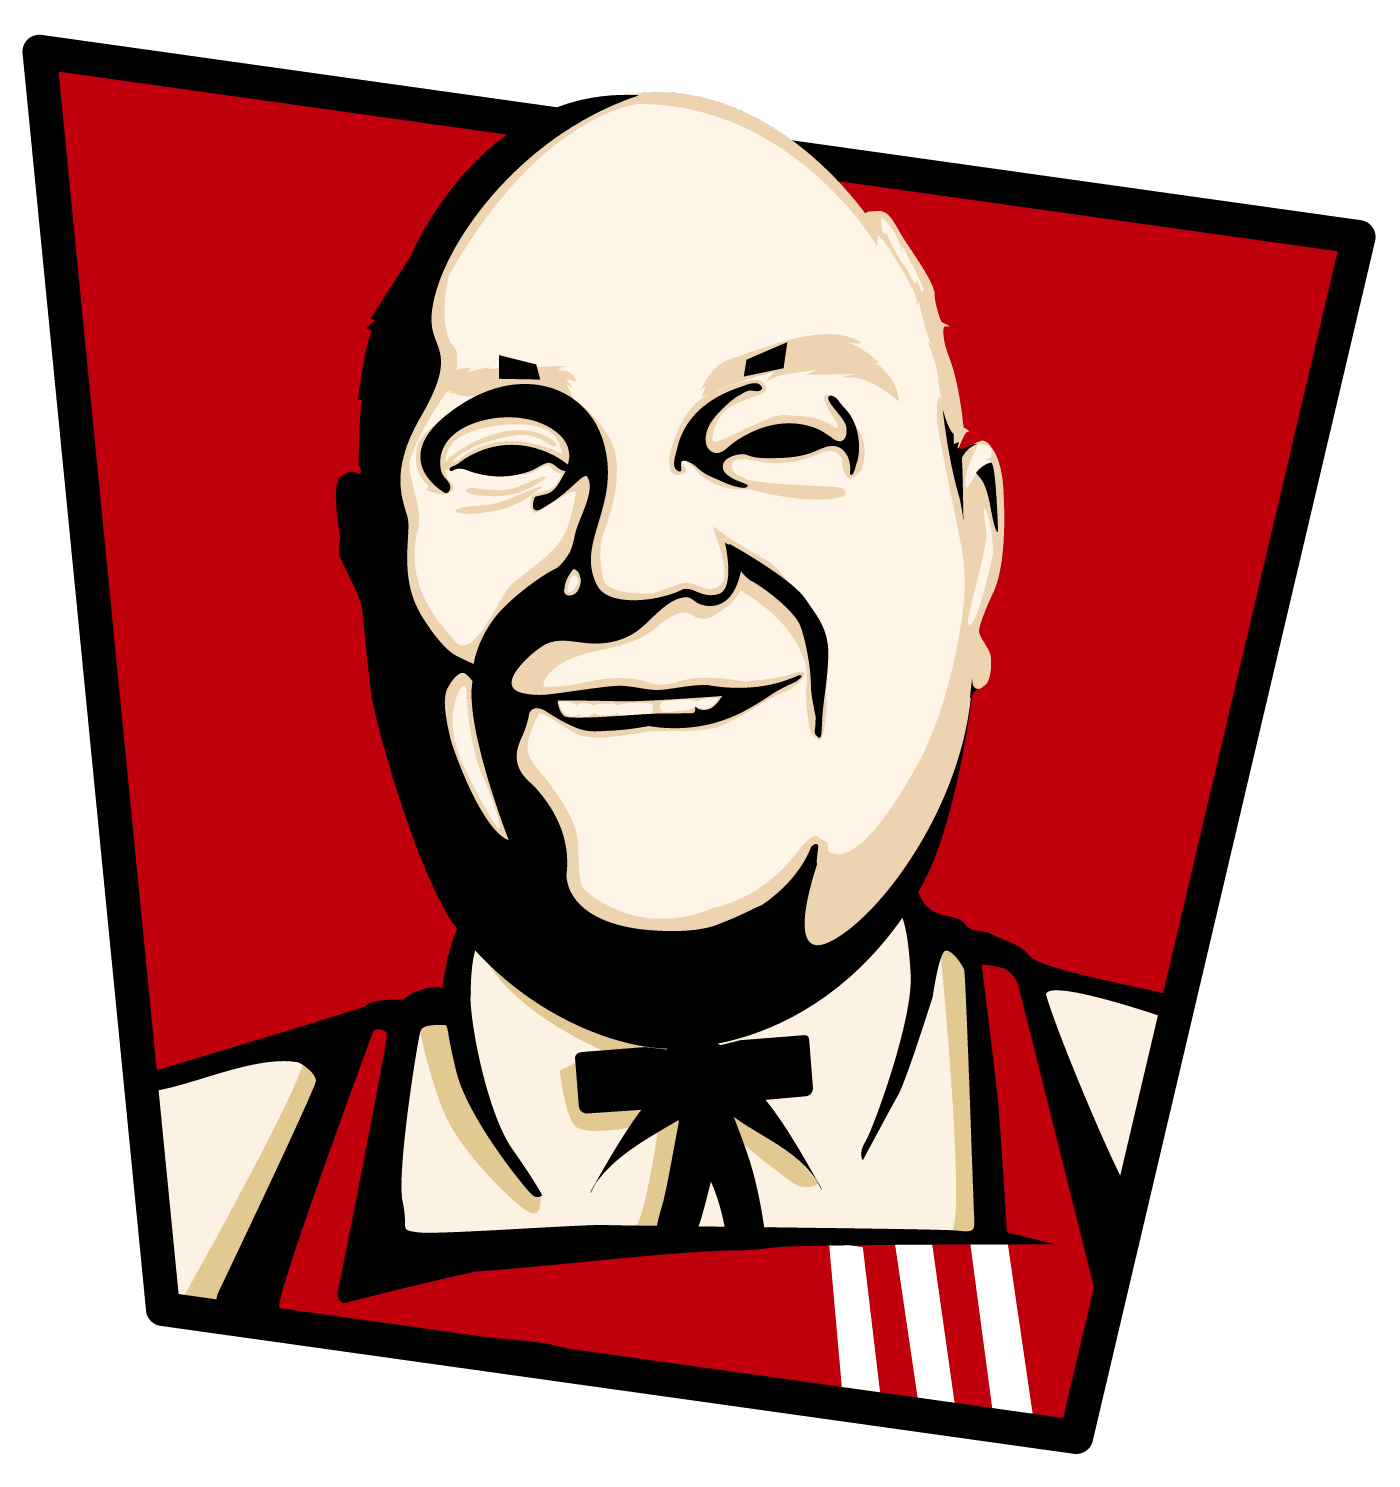 image free Draw you in kfc logo style caricature pop arts by Redwart